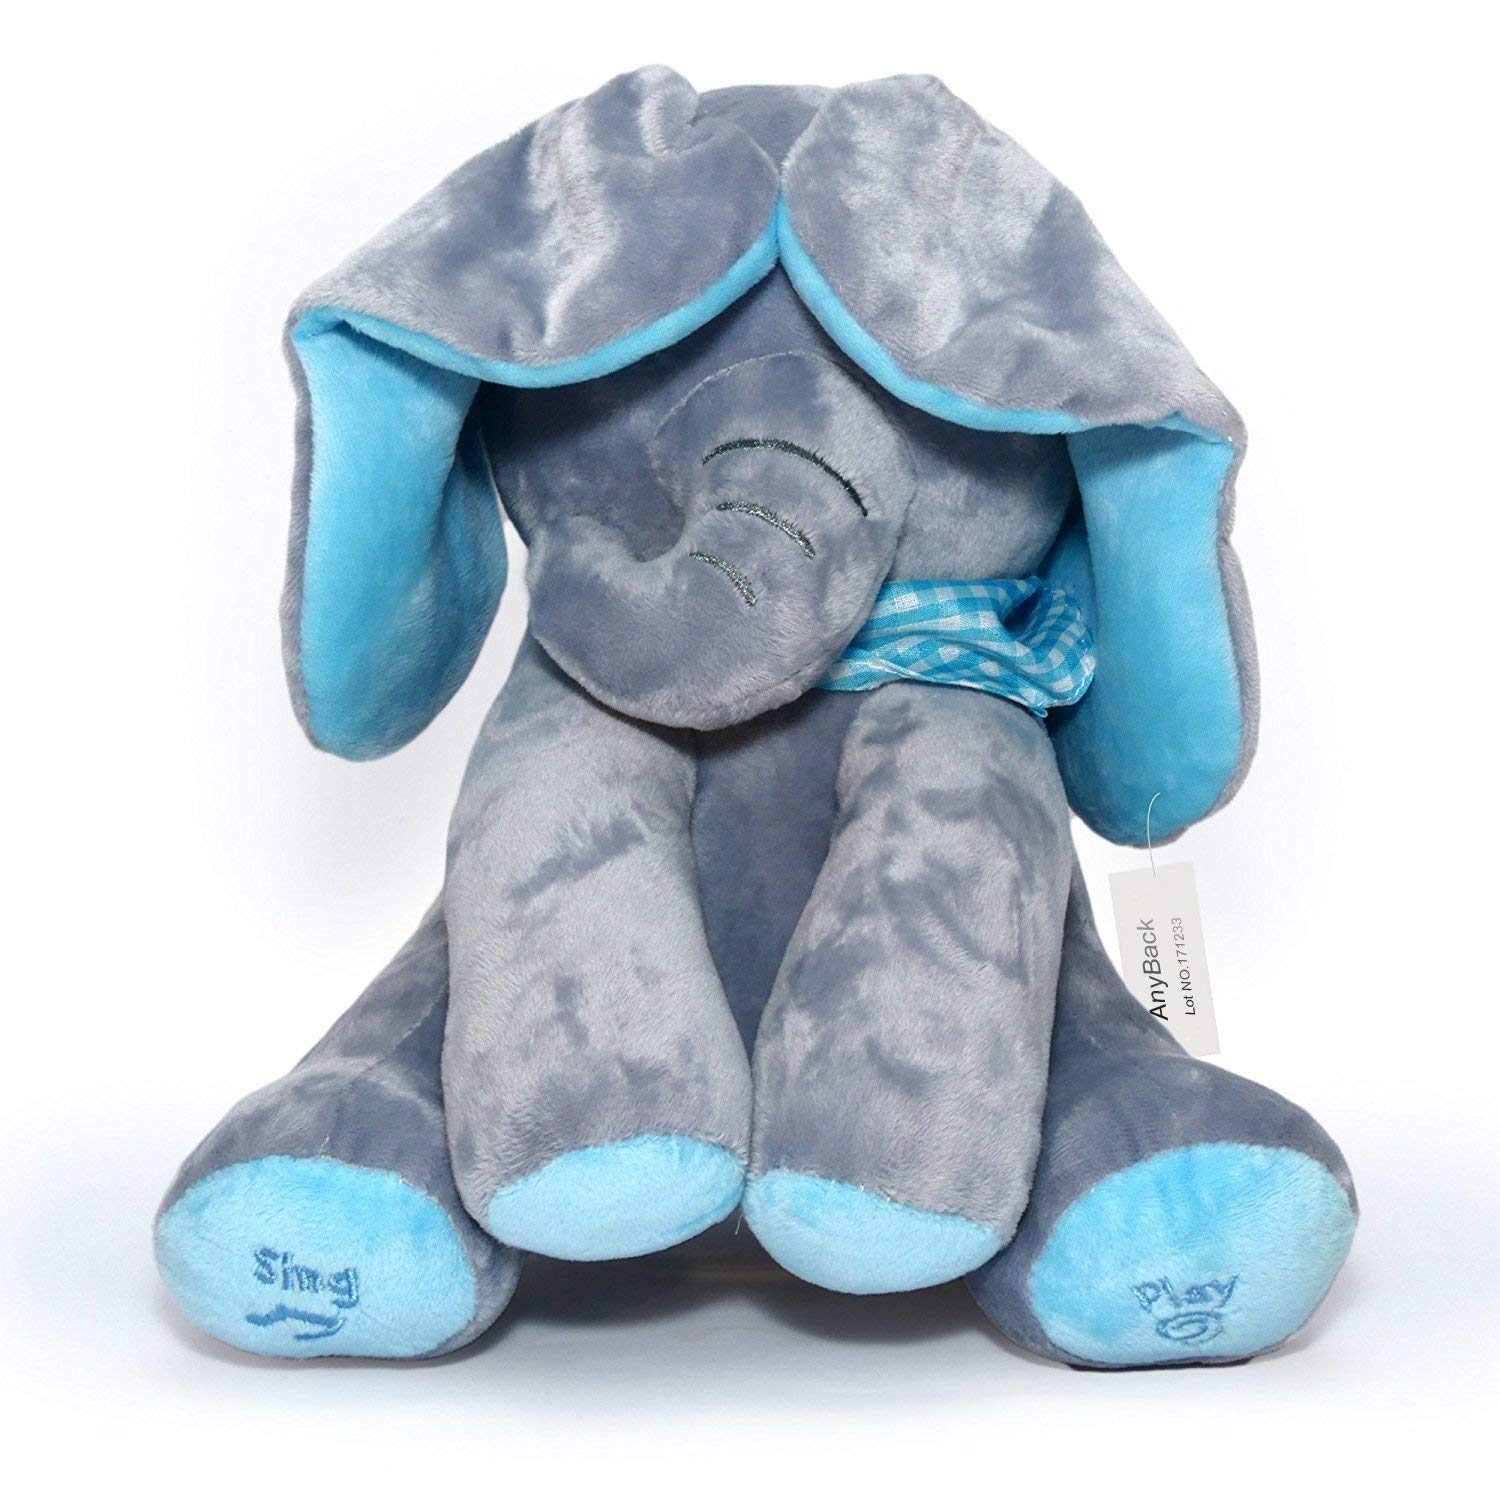 AnyBack Peek A Boo Elephant Electronic Stuffed Plush Animals Pets Toys, Hide-and-Seek Elephant Electric Plush Cute Mimicry Pet Interactive Musical Toys for Kids Boys Girls Toddlers 1 Pack Grey Blue